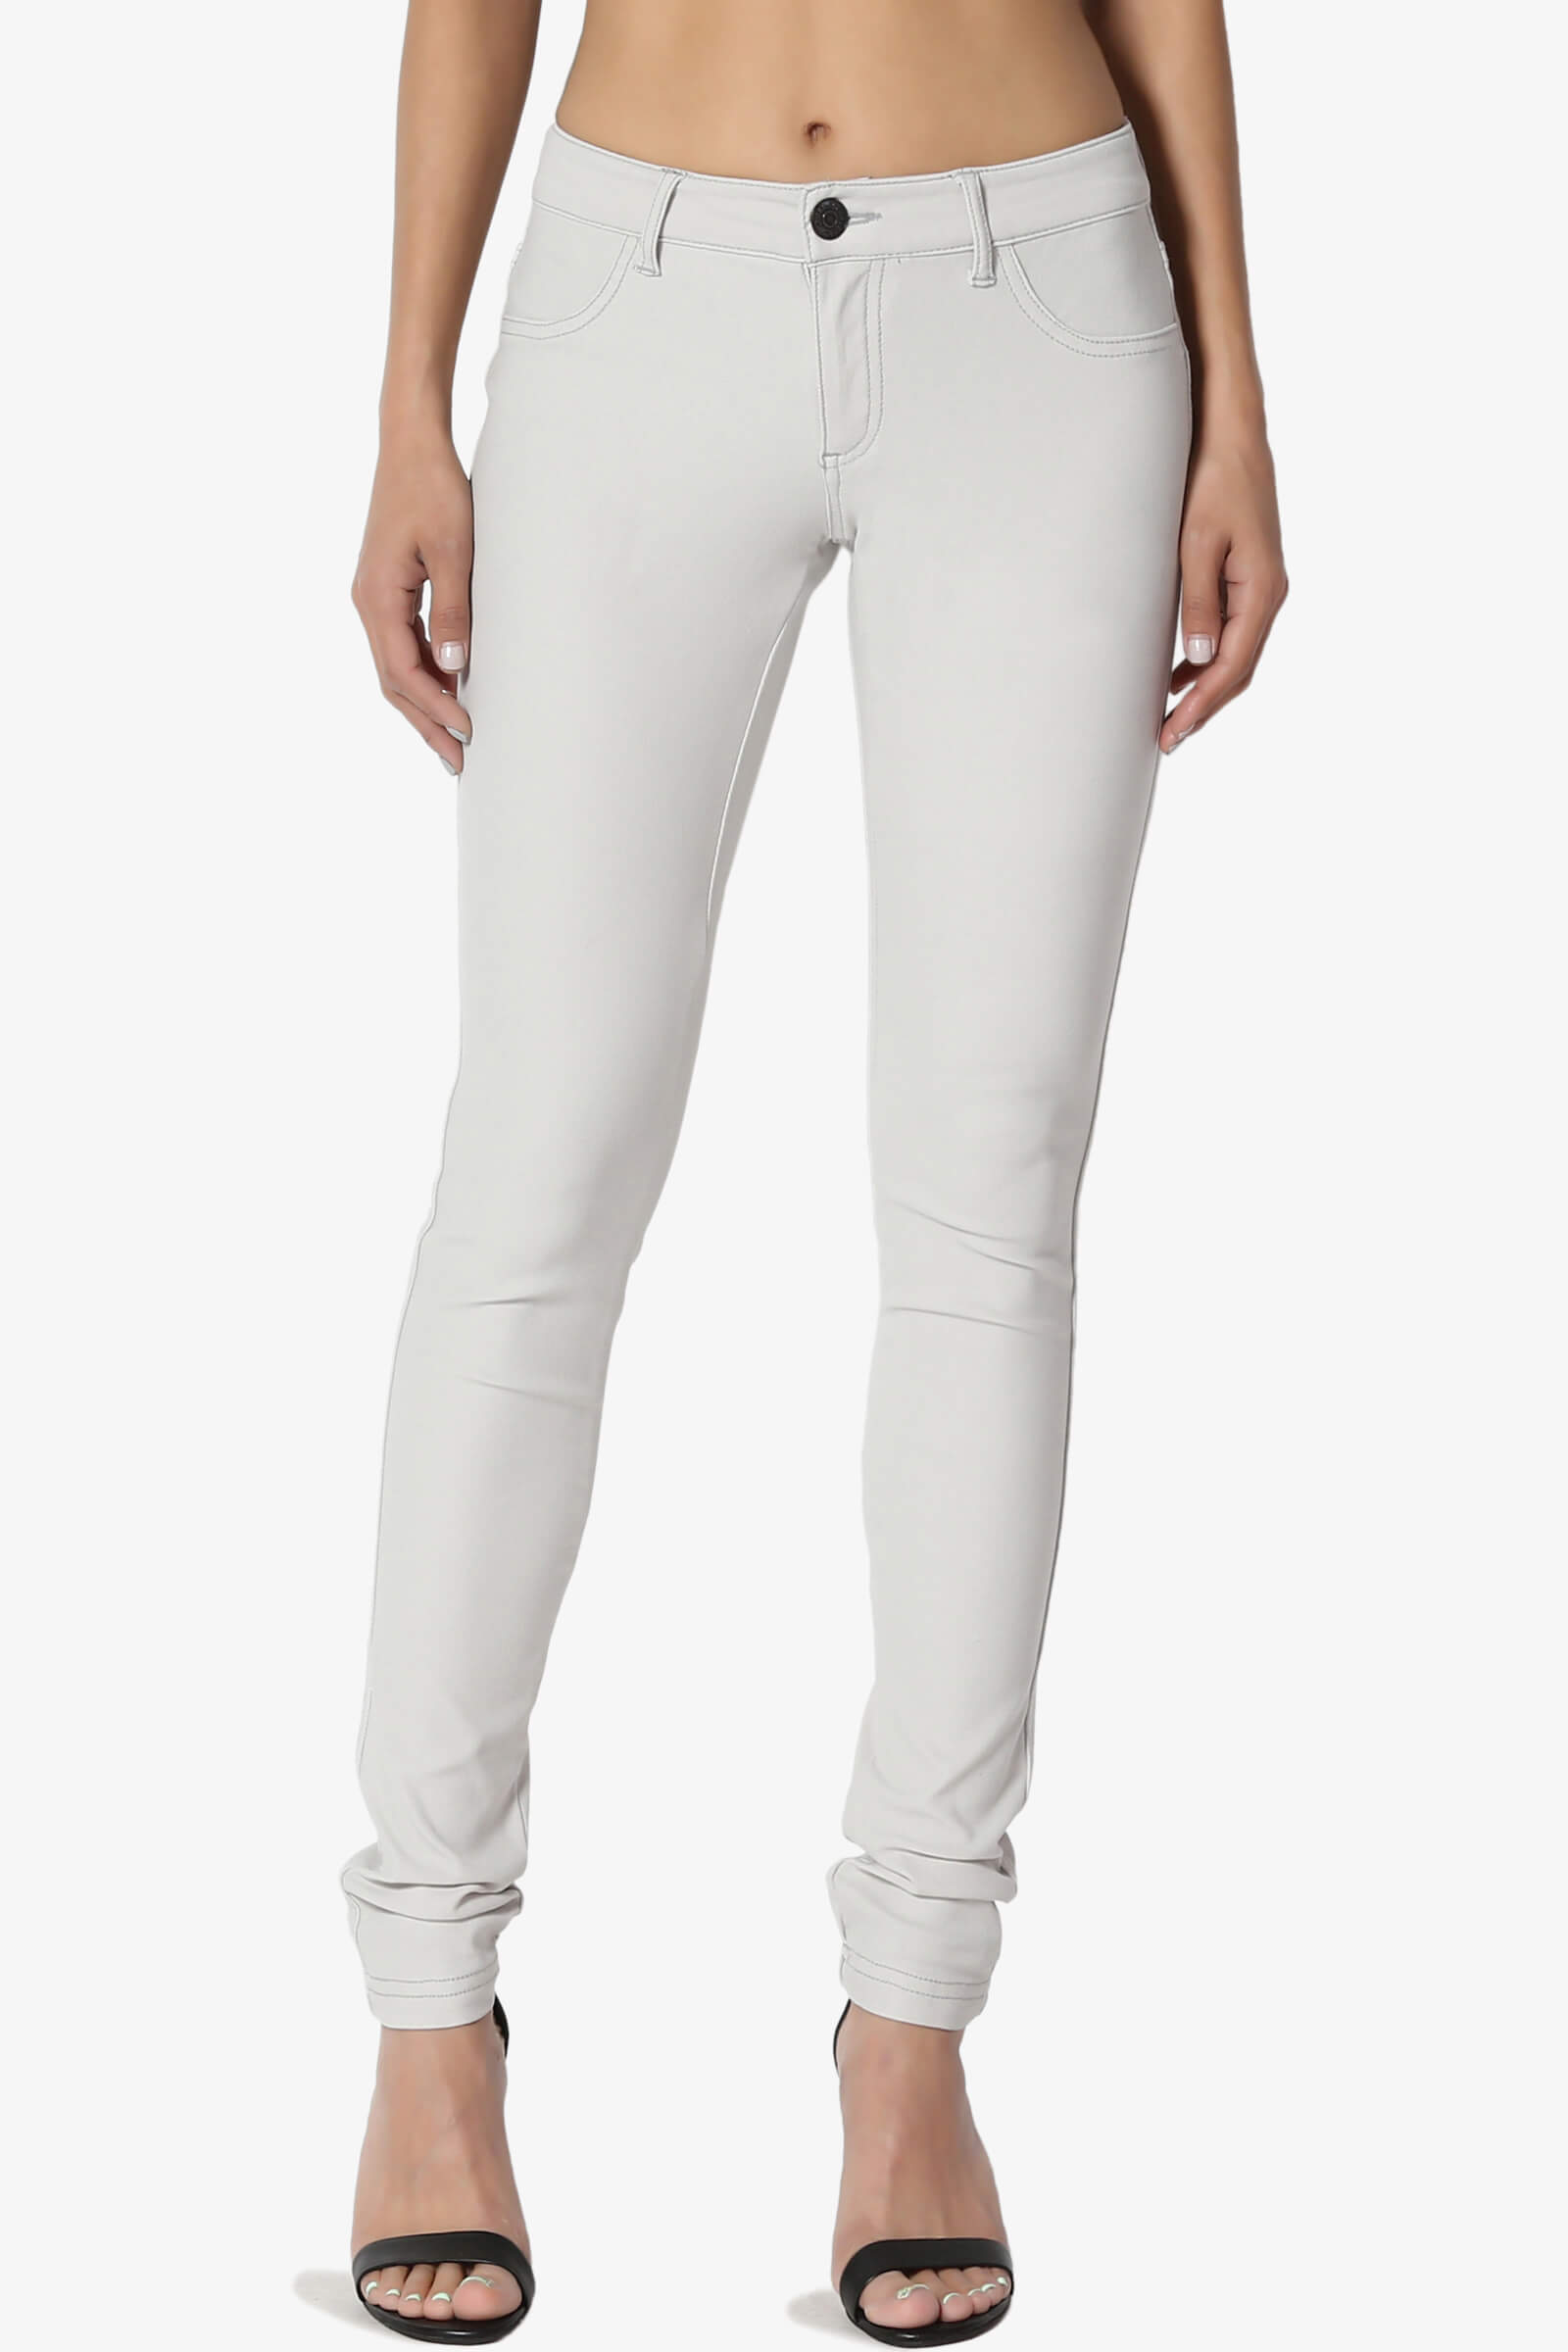 Find great deals on eBay for light colored jeans. Shop with confidence.